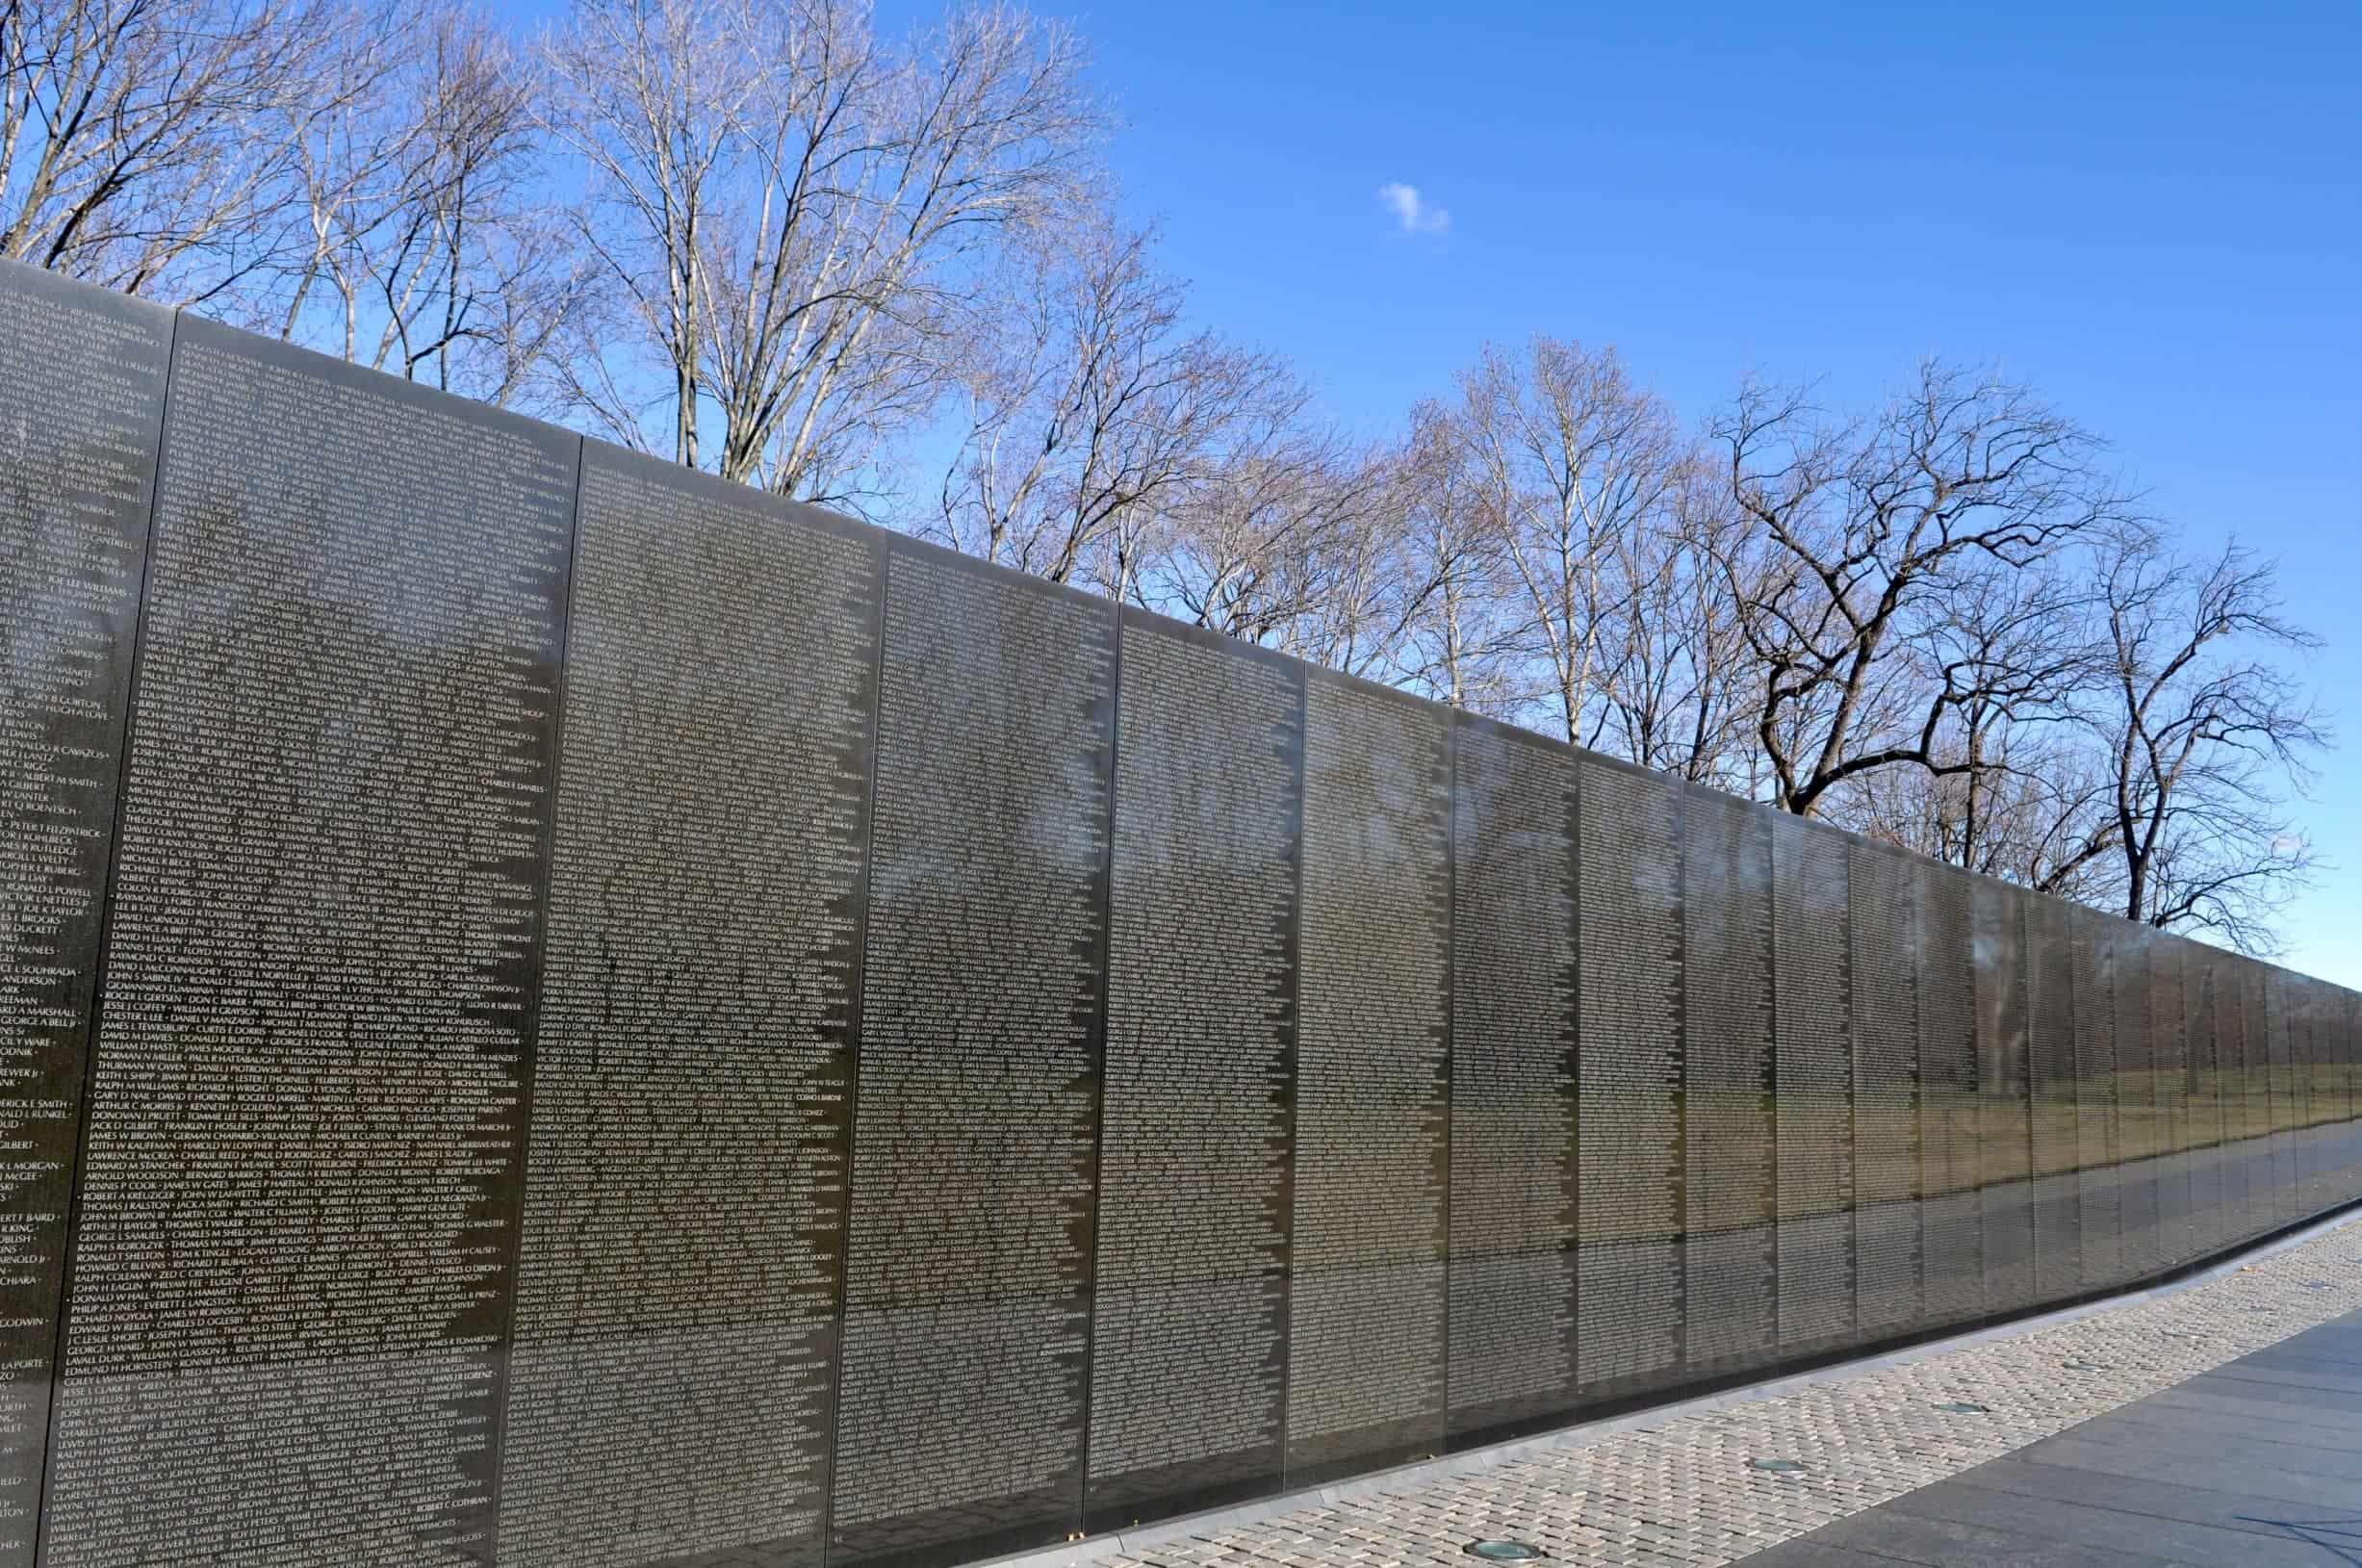 Vietnam Veterans Memorial Wall in Washington, DC